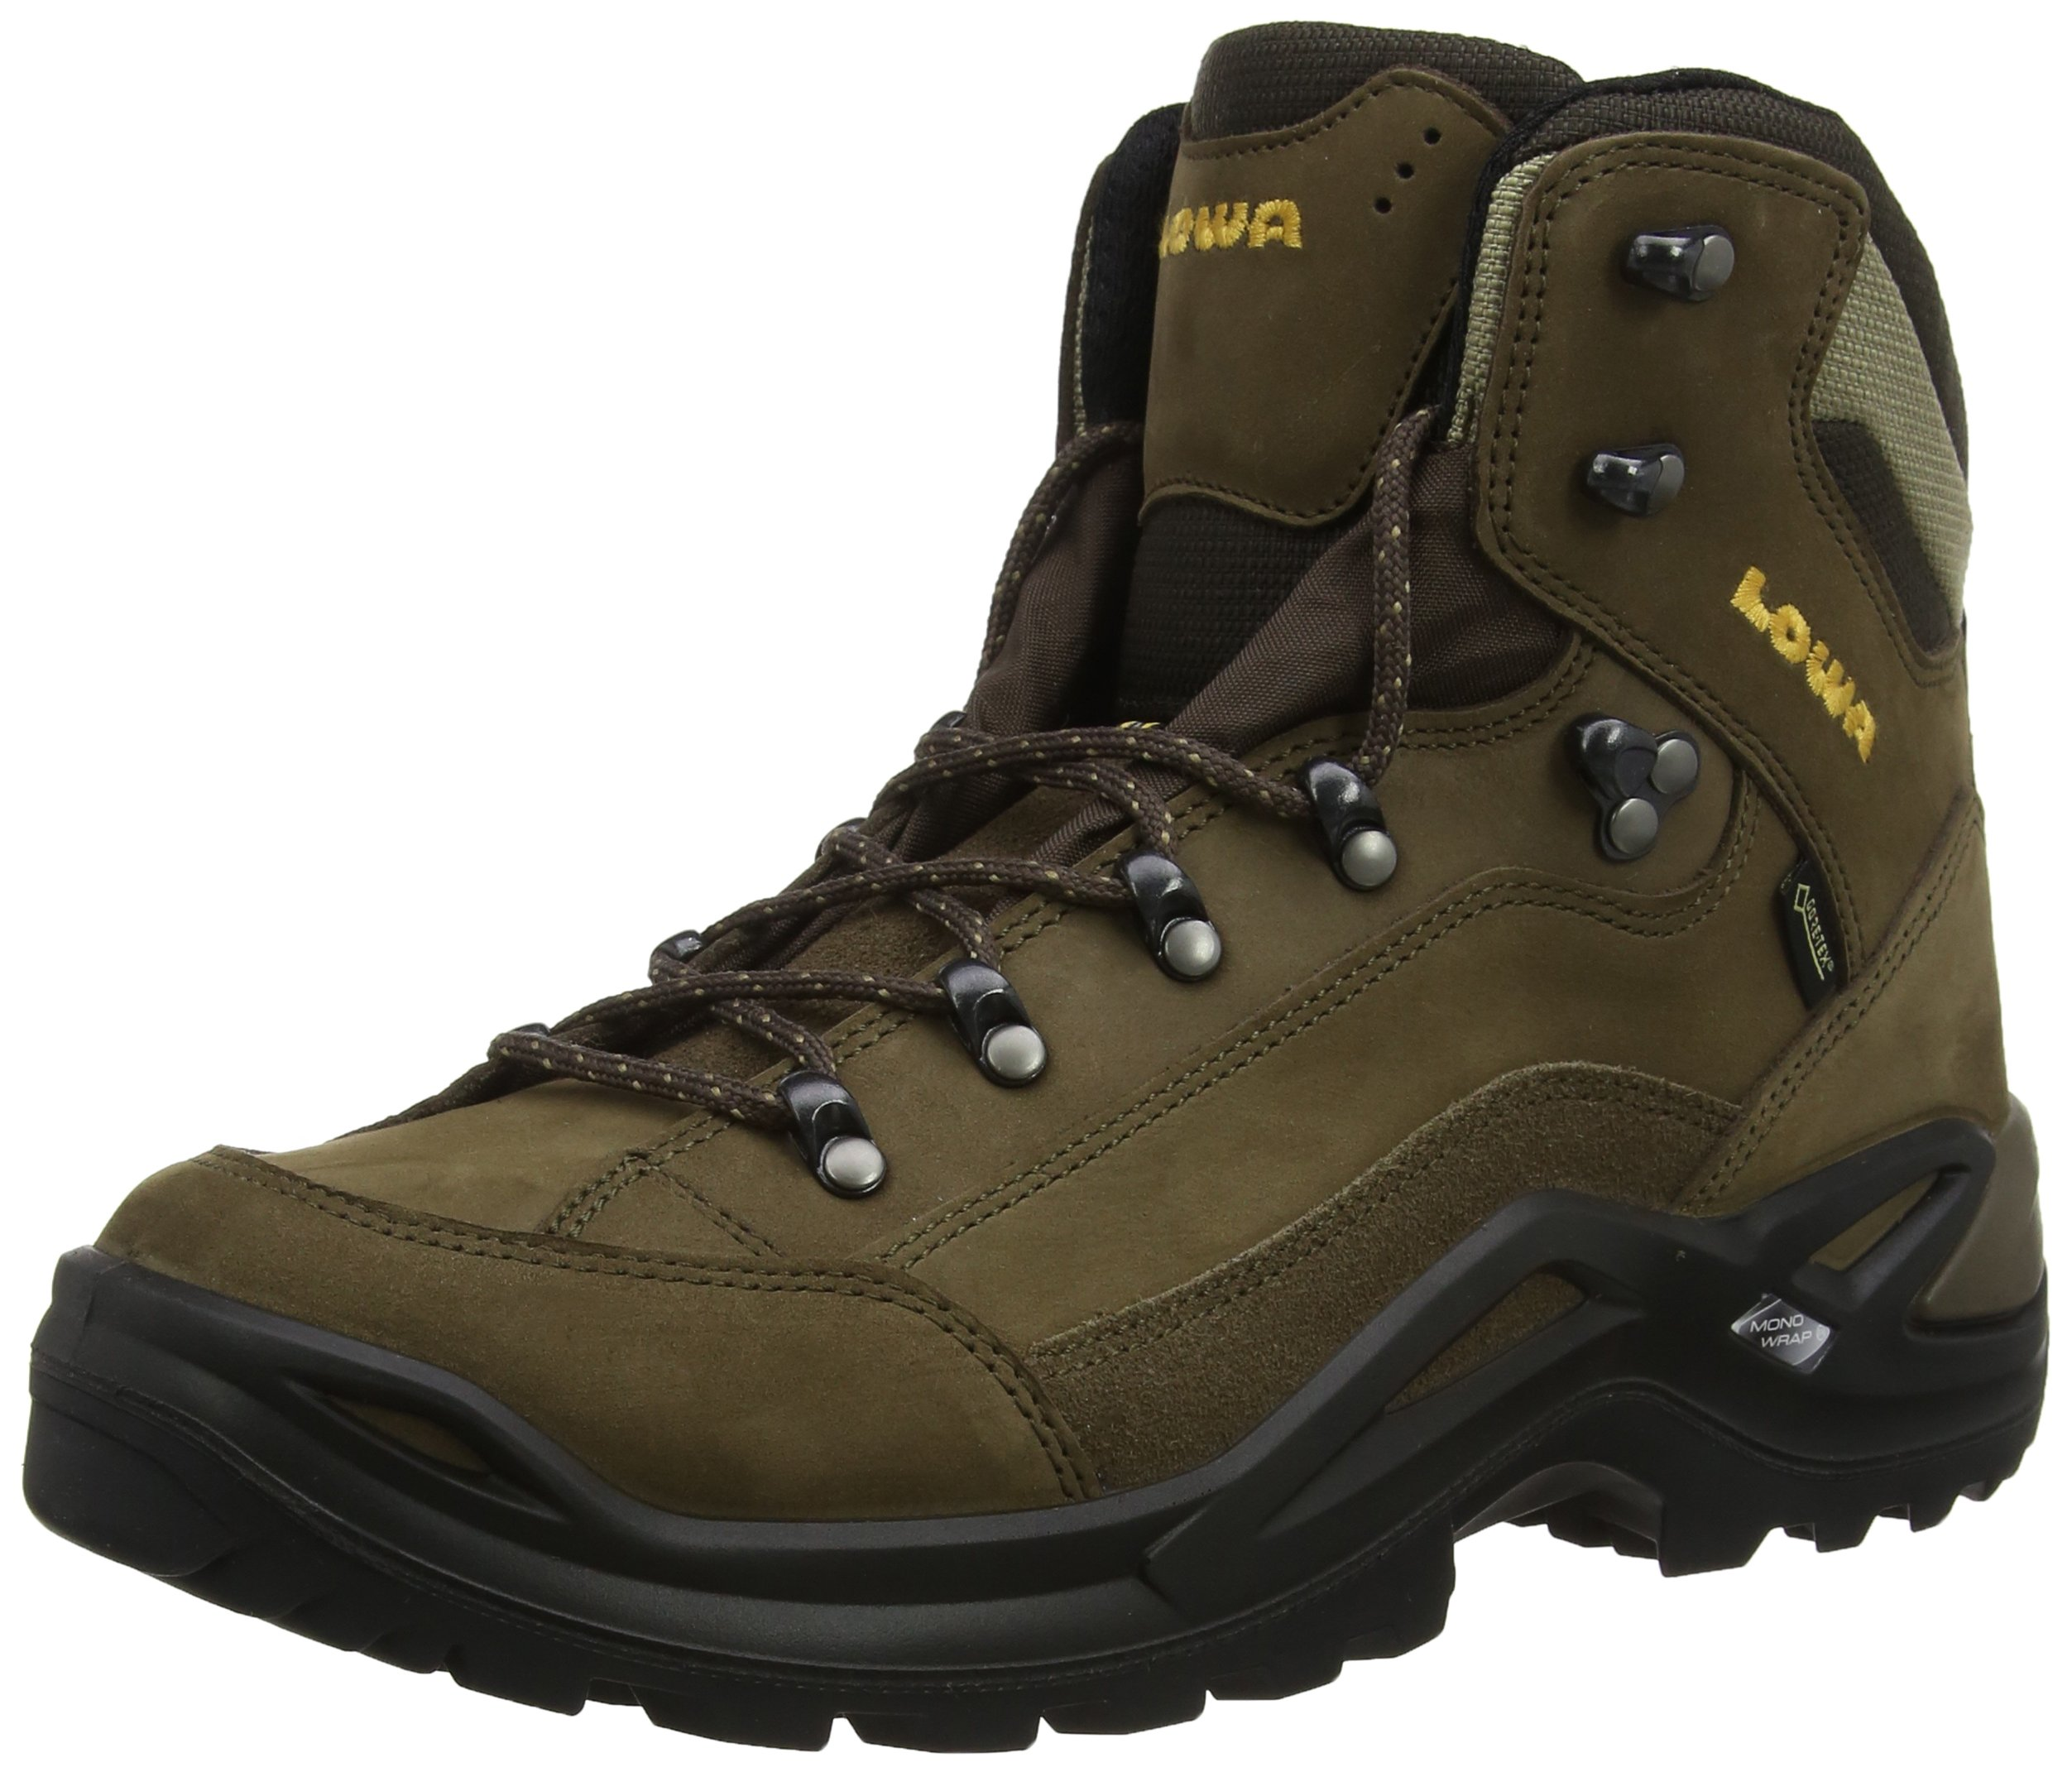 81 1e4EAfFL - Lowa Men's Renegade GTX Mid High Rise Hiking Boots